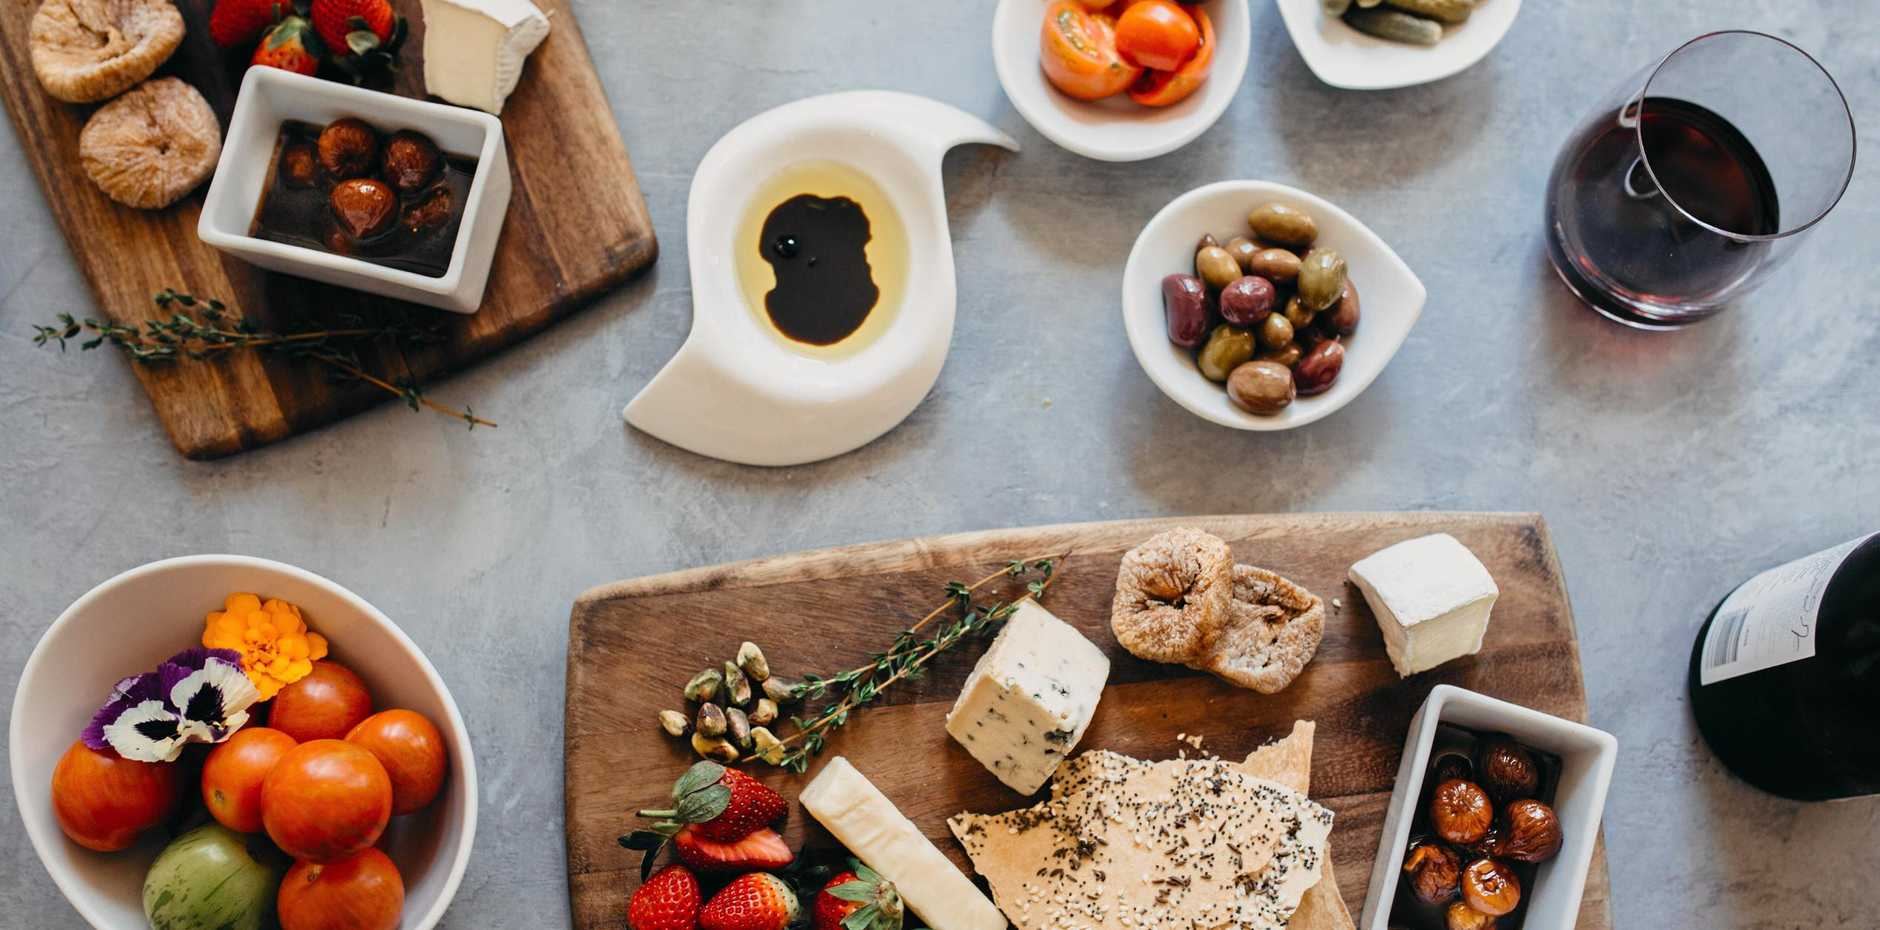 Enjoy a range of cheeses and accompaniments.